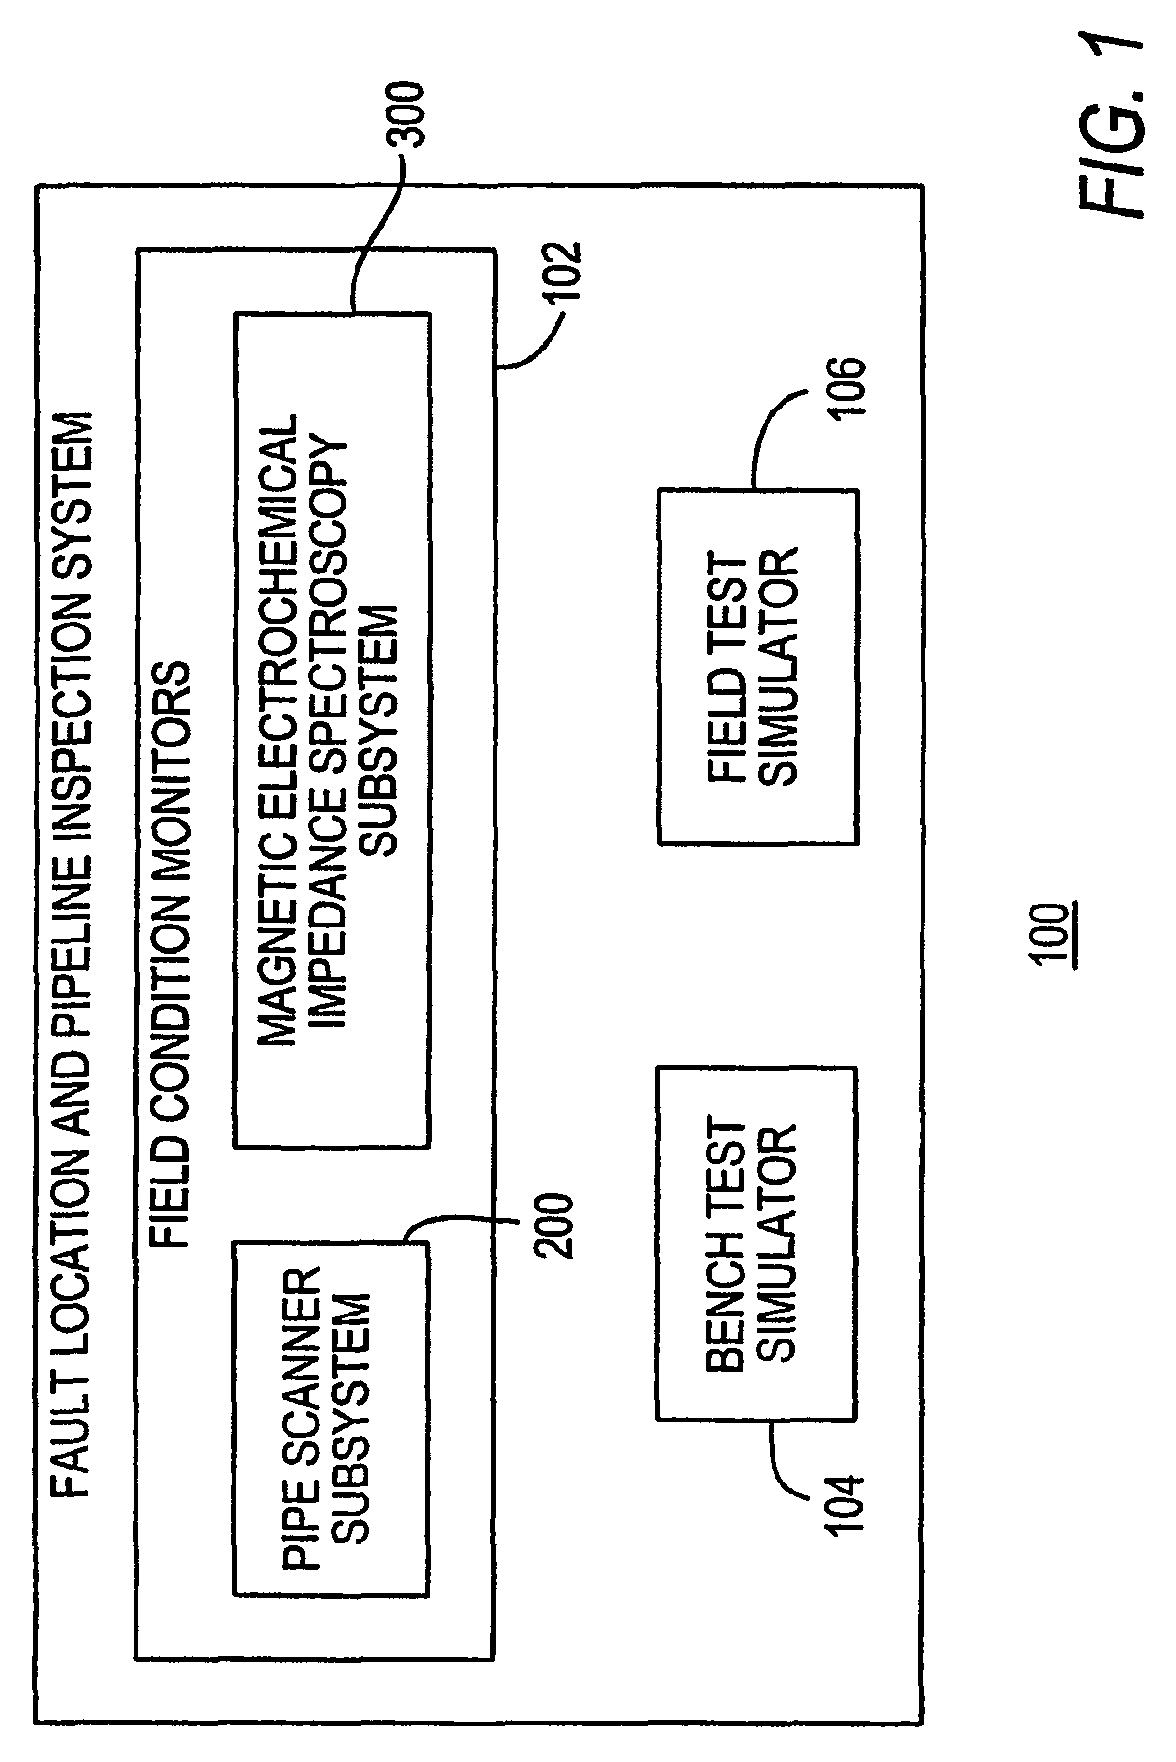 Patent Us7924032 Method For Fabricating Pipeline Coating Samples Diagram Wiring Schematic Car Alarm Mulator Inductor Scope Is Drawing